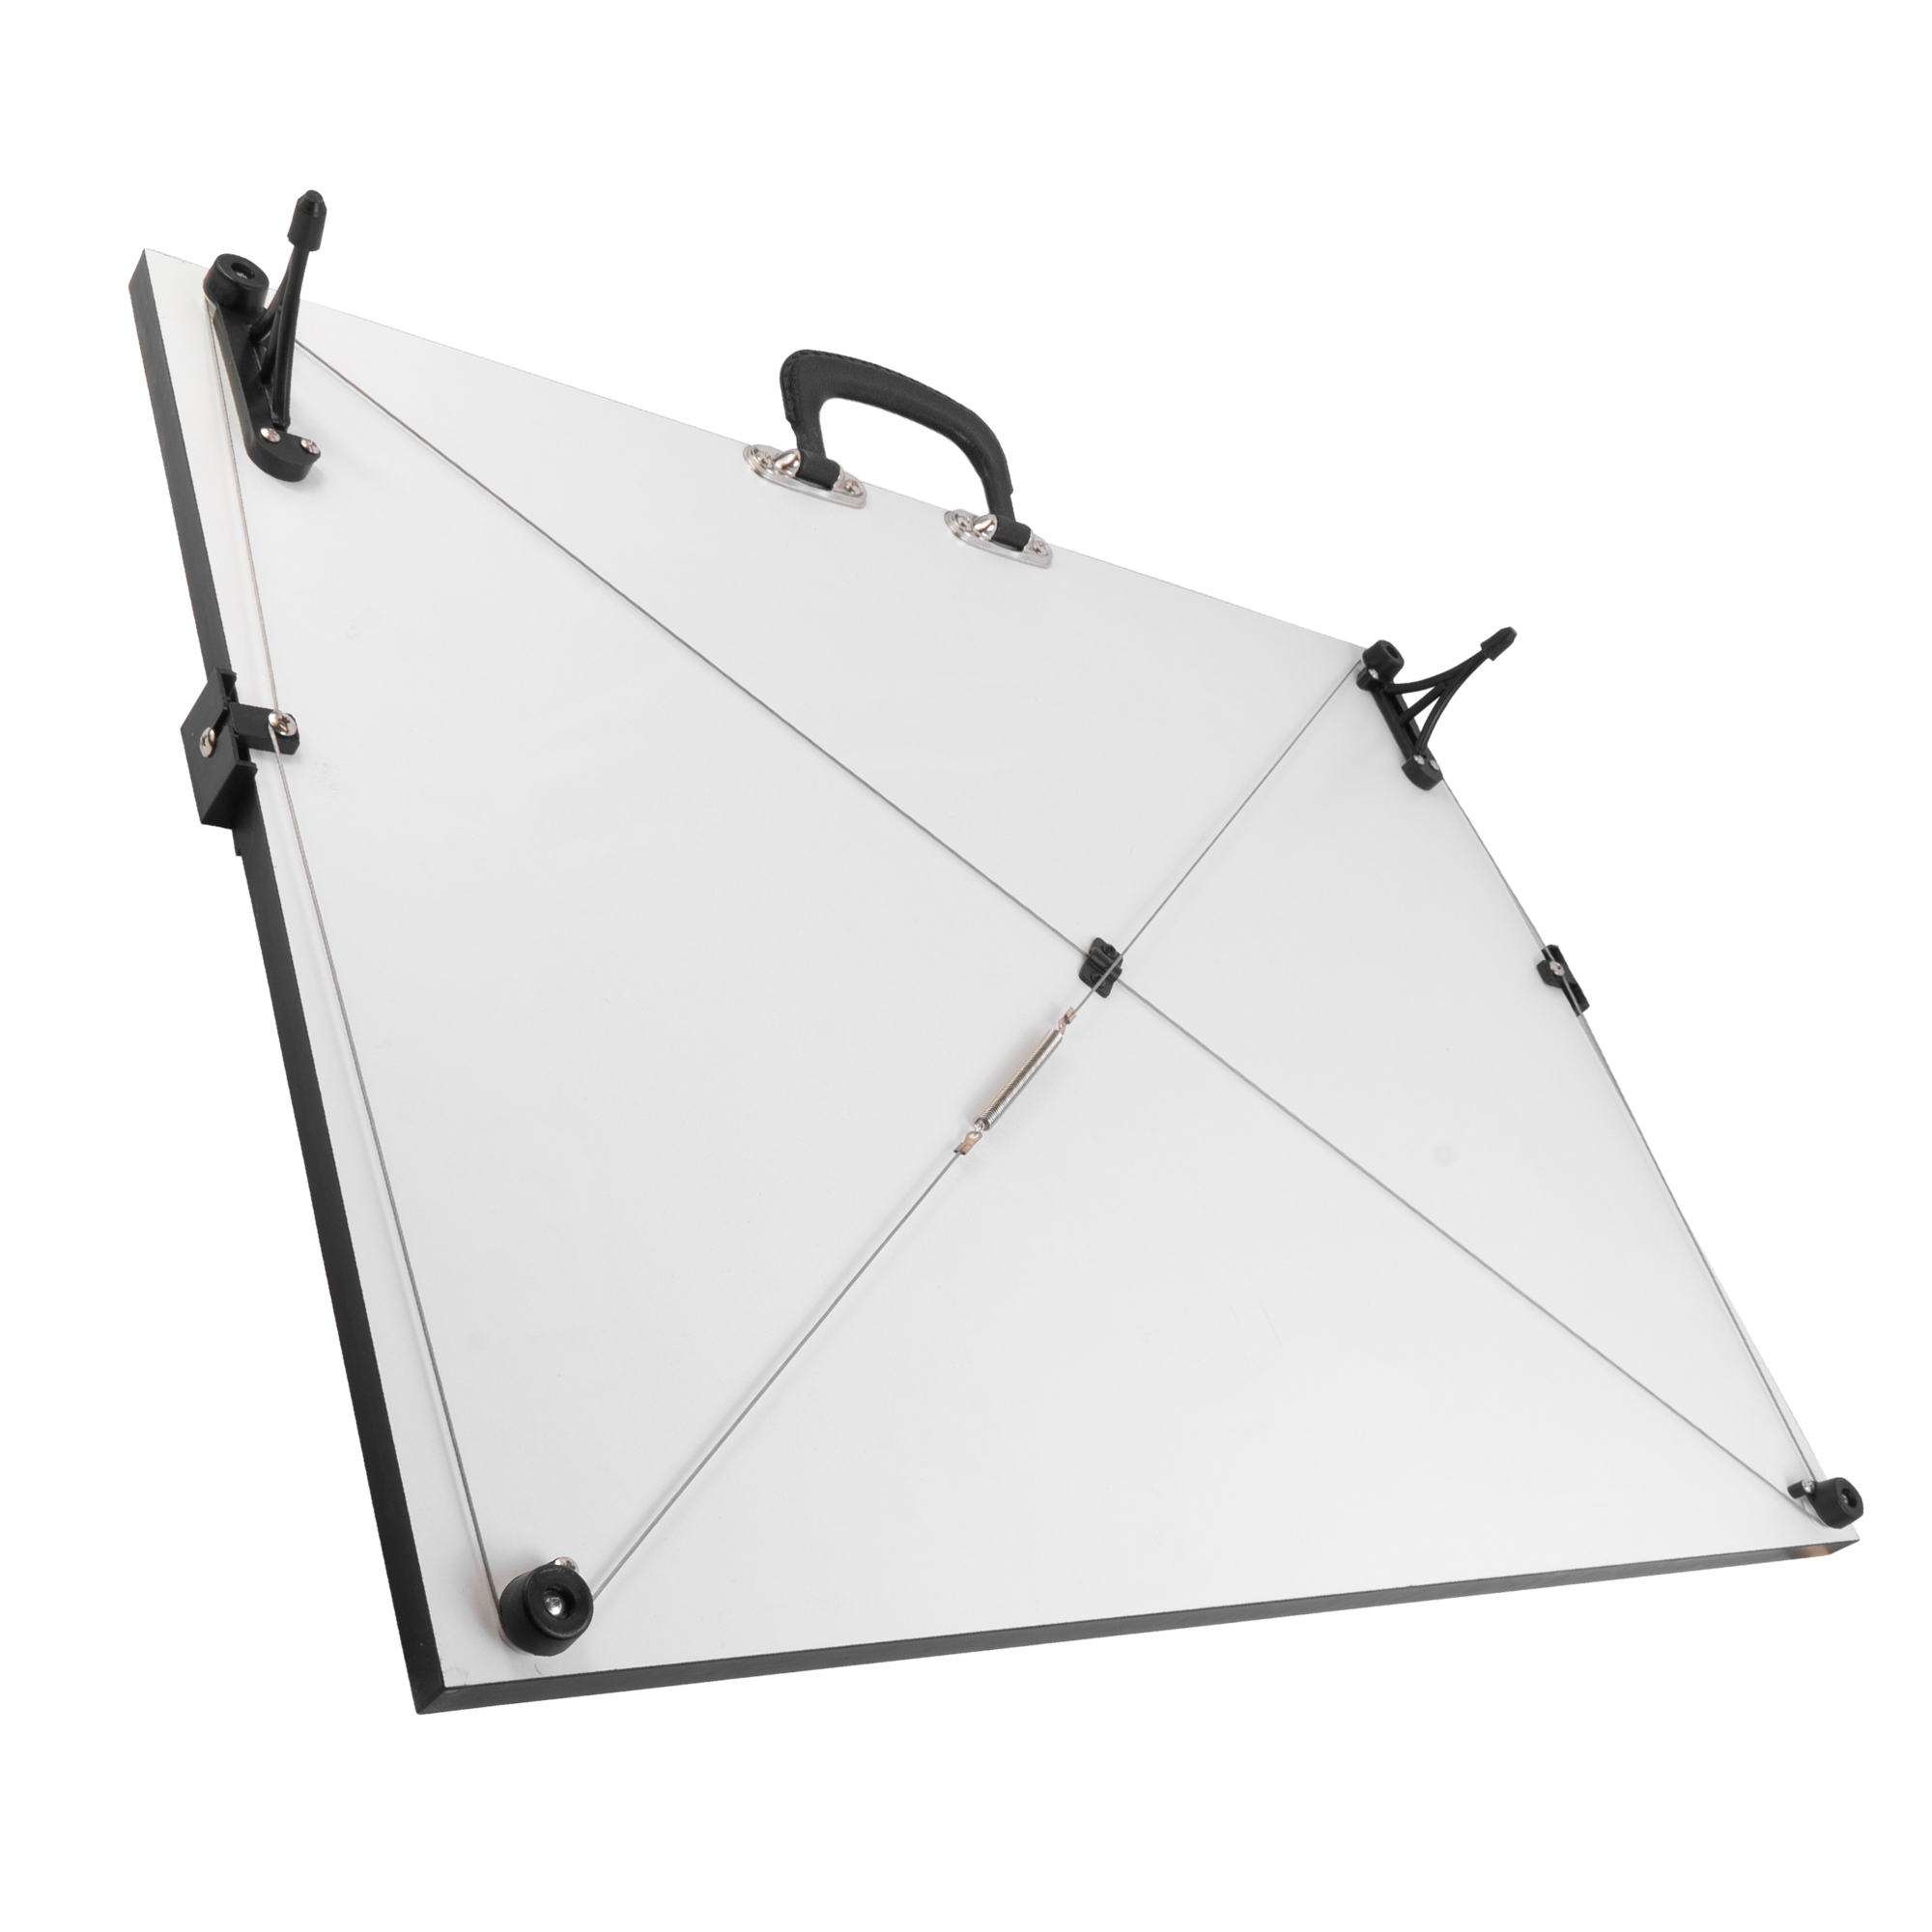 the stb drafting drawing board by pacific arc made for drafting designers